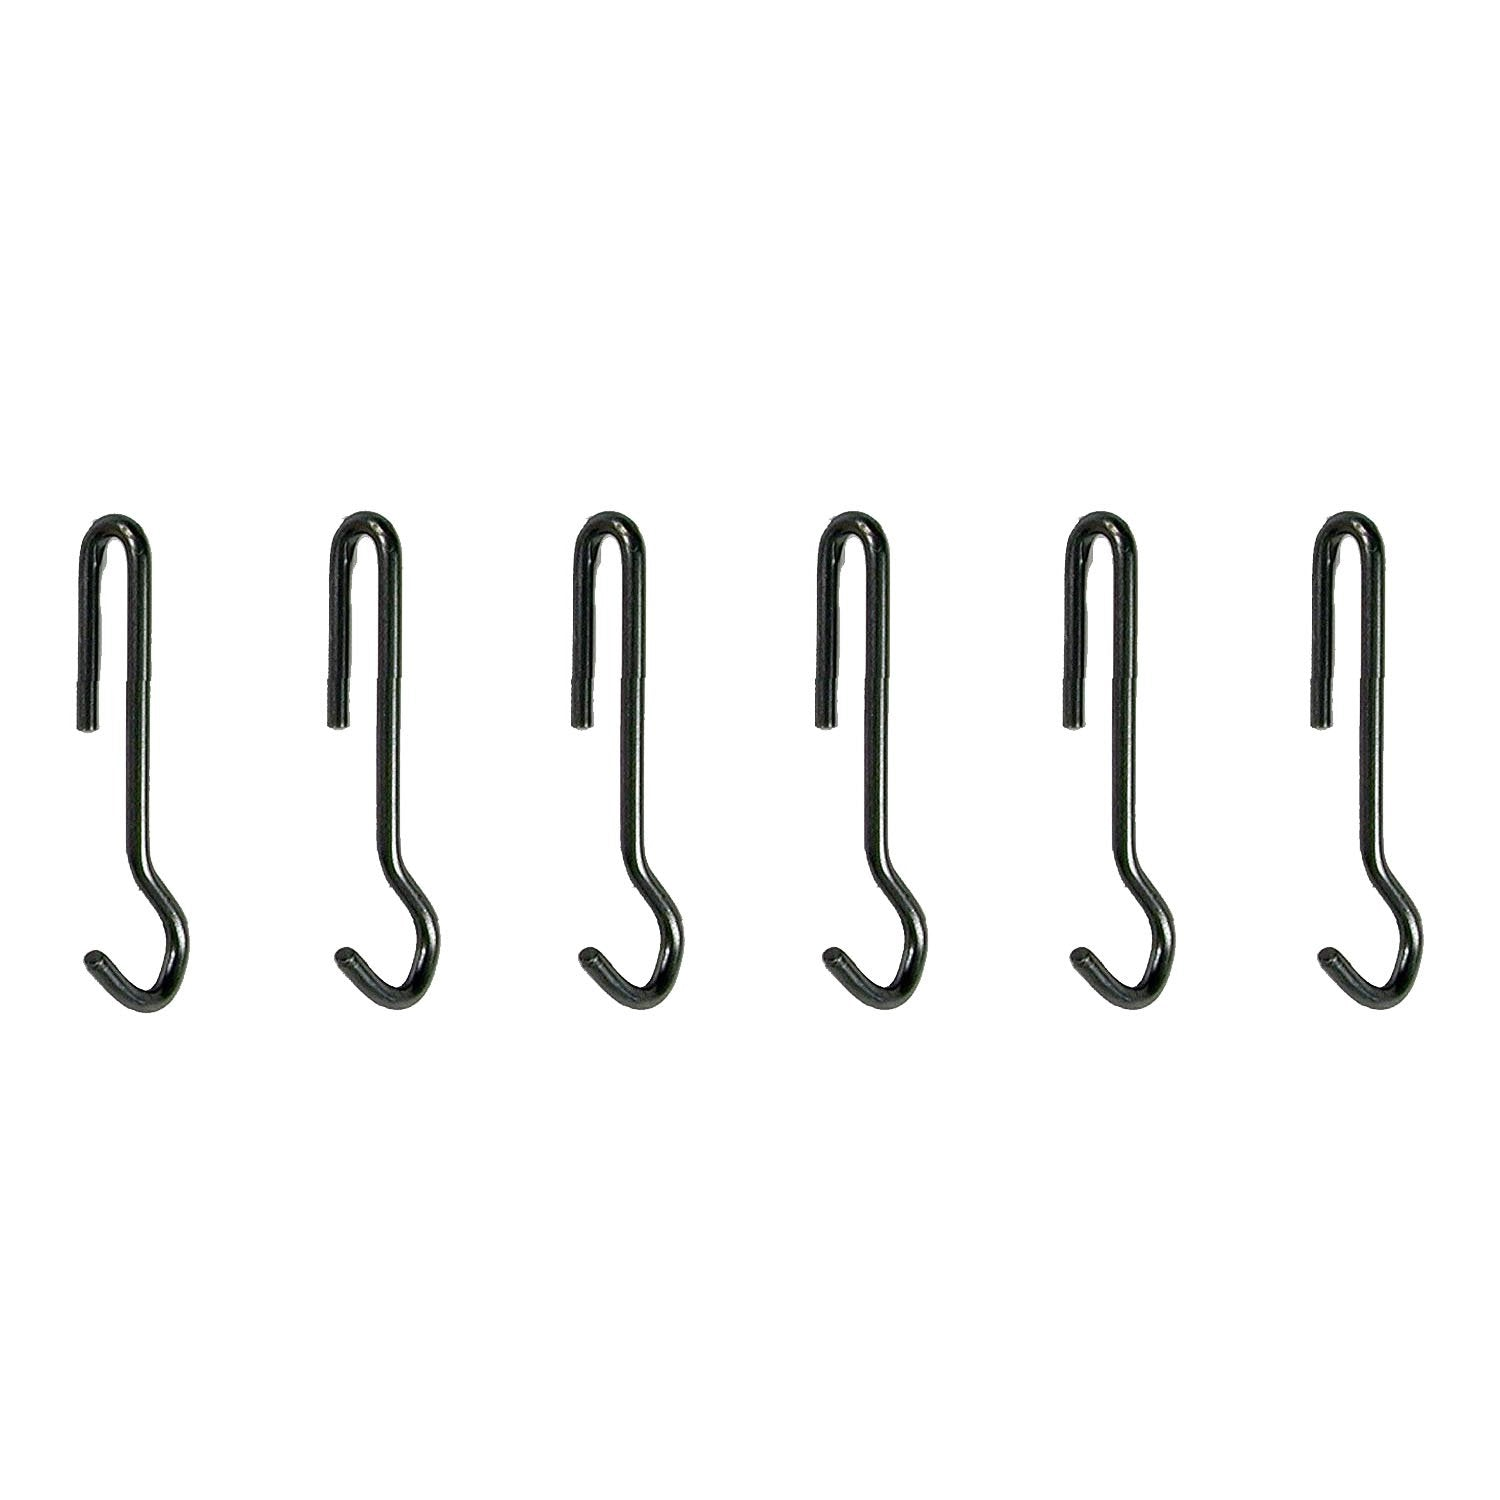 Enclume Angled Pot Hook Use With Pot Racks, Set Of 6